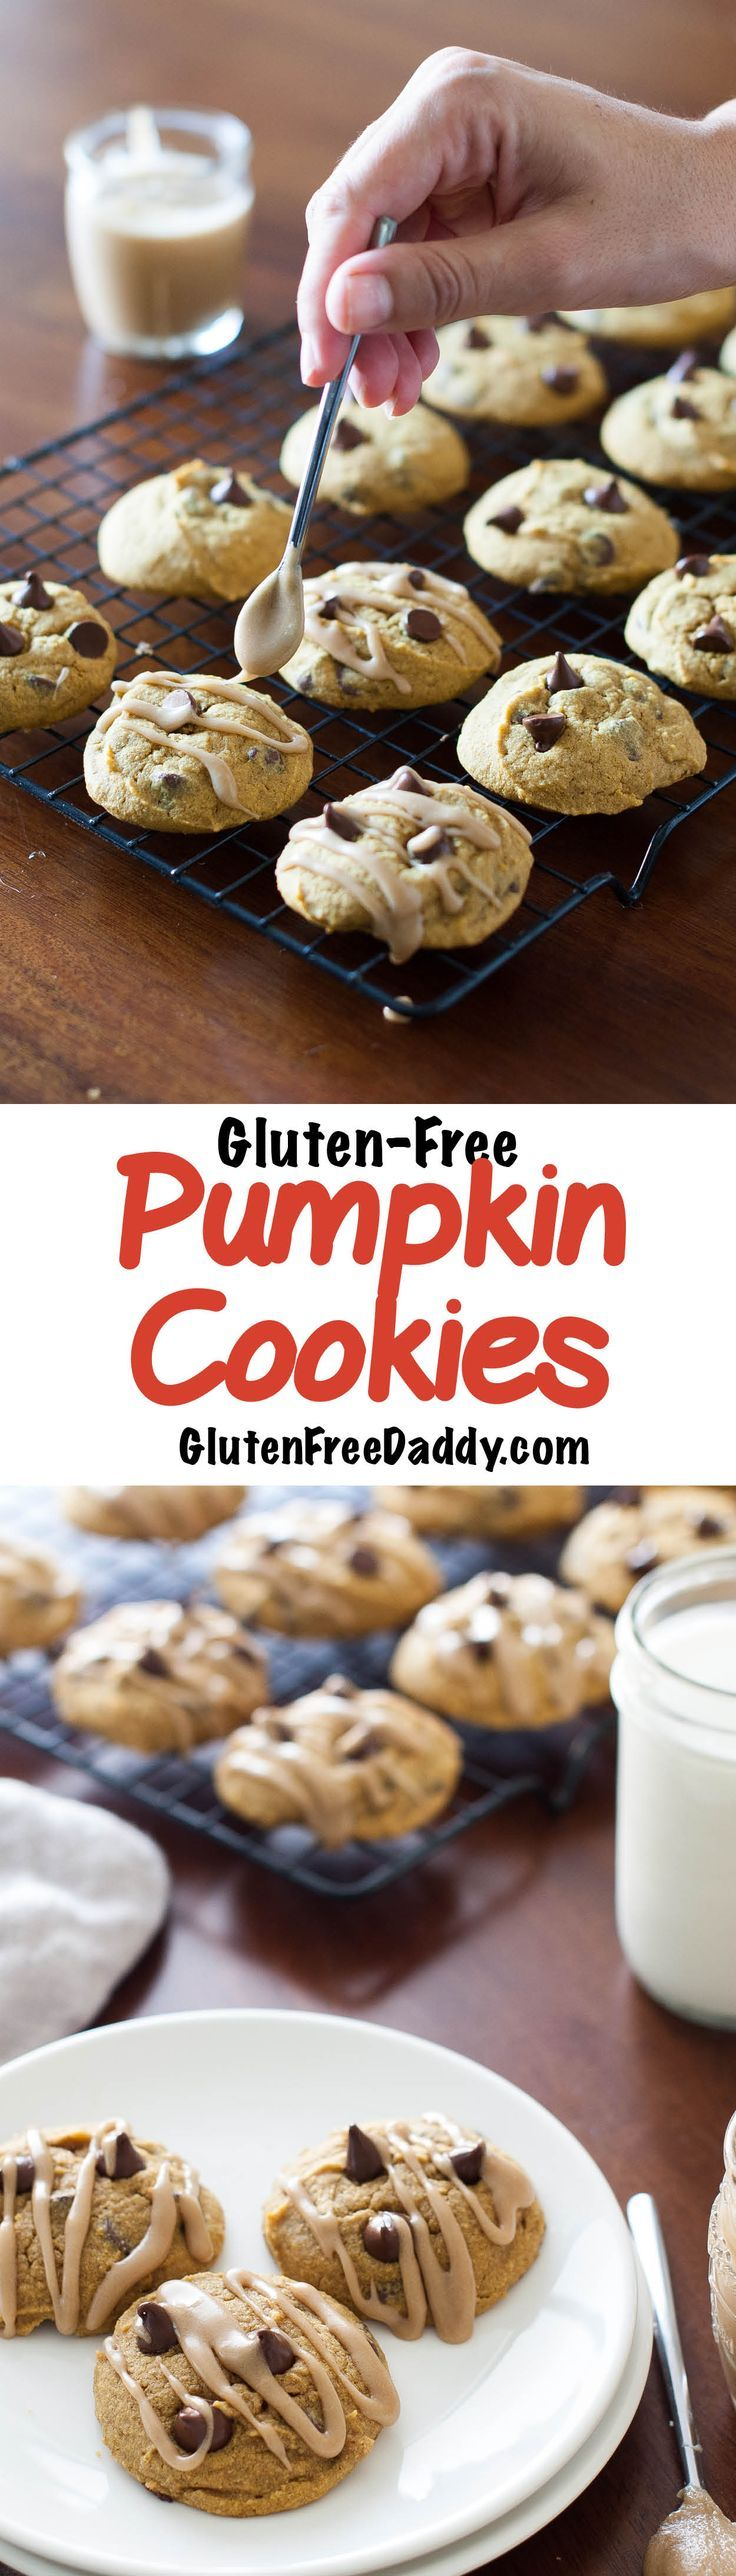 I love this gluten-free quinoa pumpkin cookies recipe with chocolate chips and Brown Sugar Icing. Sometimes I leave off the icing to make them faster and less messy or other times I leave the brown sugar icing on because it complements the nutty taste of the quinoa flour.